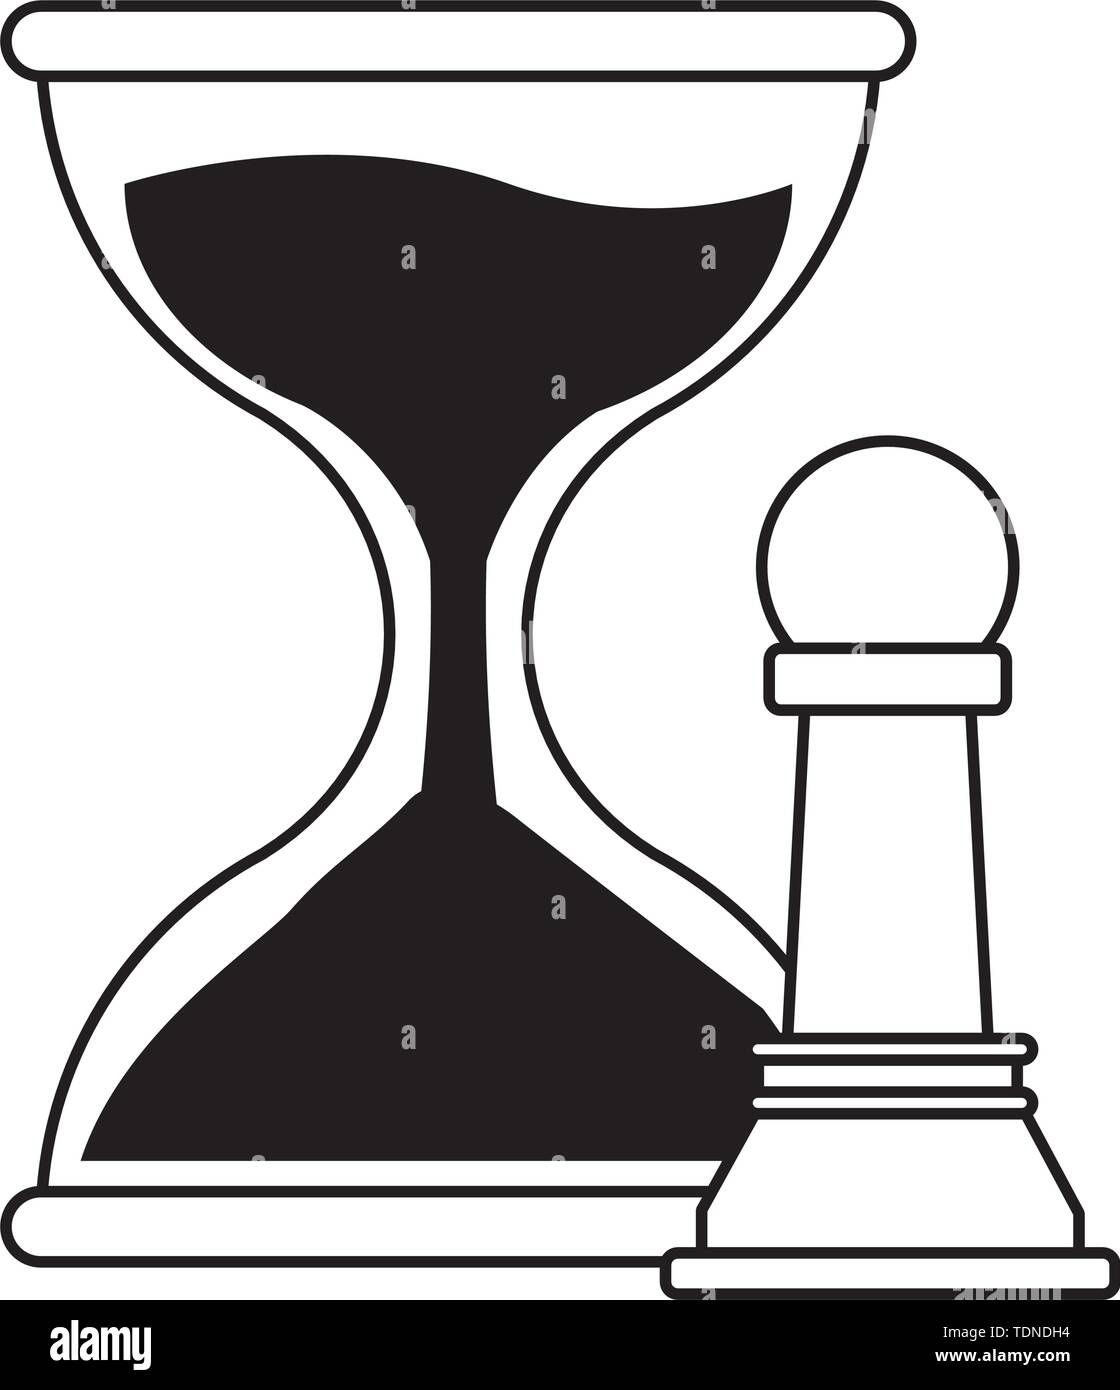 hourglass sand timer with chess pawn icon cartoon in black and white vector illustration graphic design - Stock Image